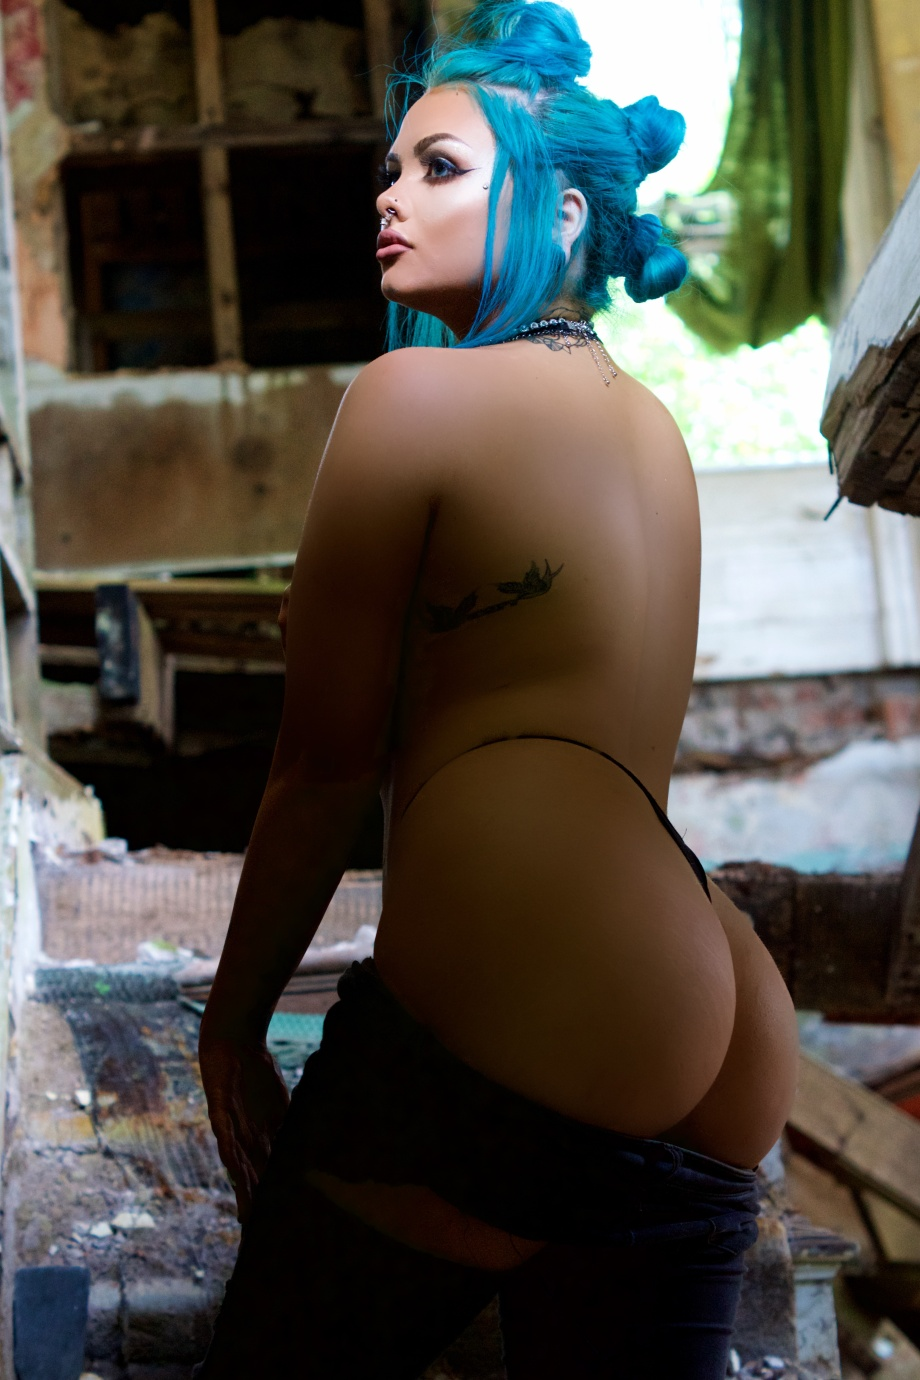 katie kitten, abandoned house, alternative, glamour, punk, cork, cobh, sexy, hair, topless, nude